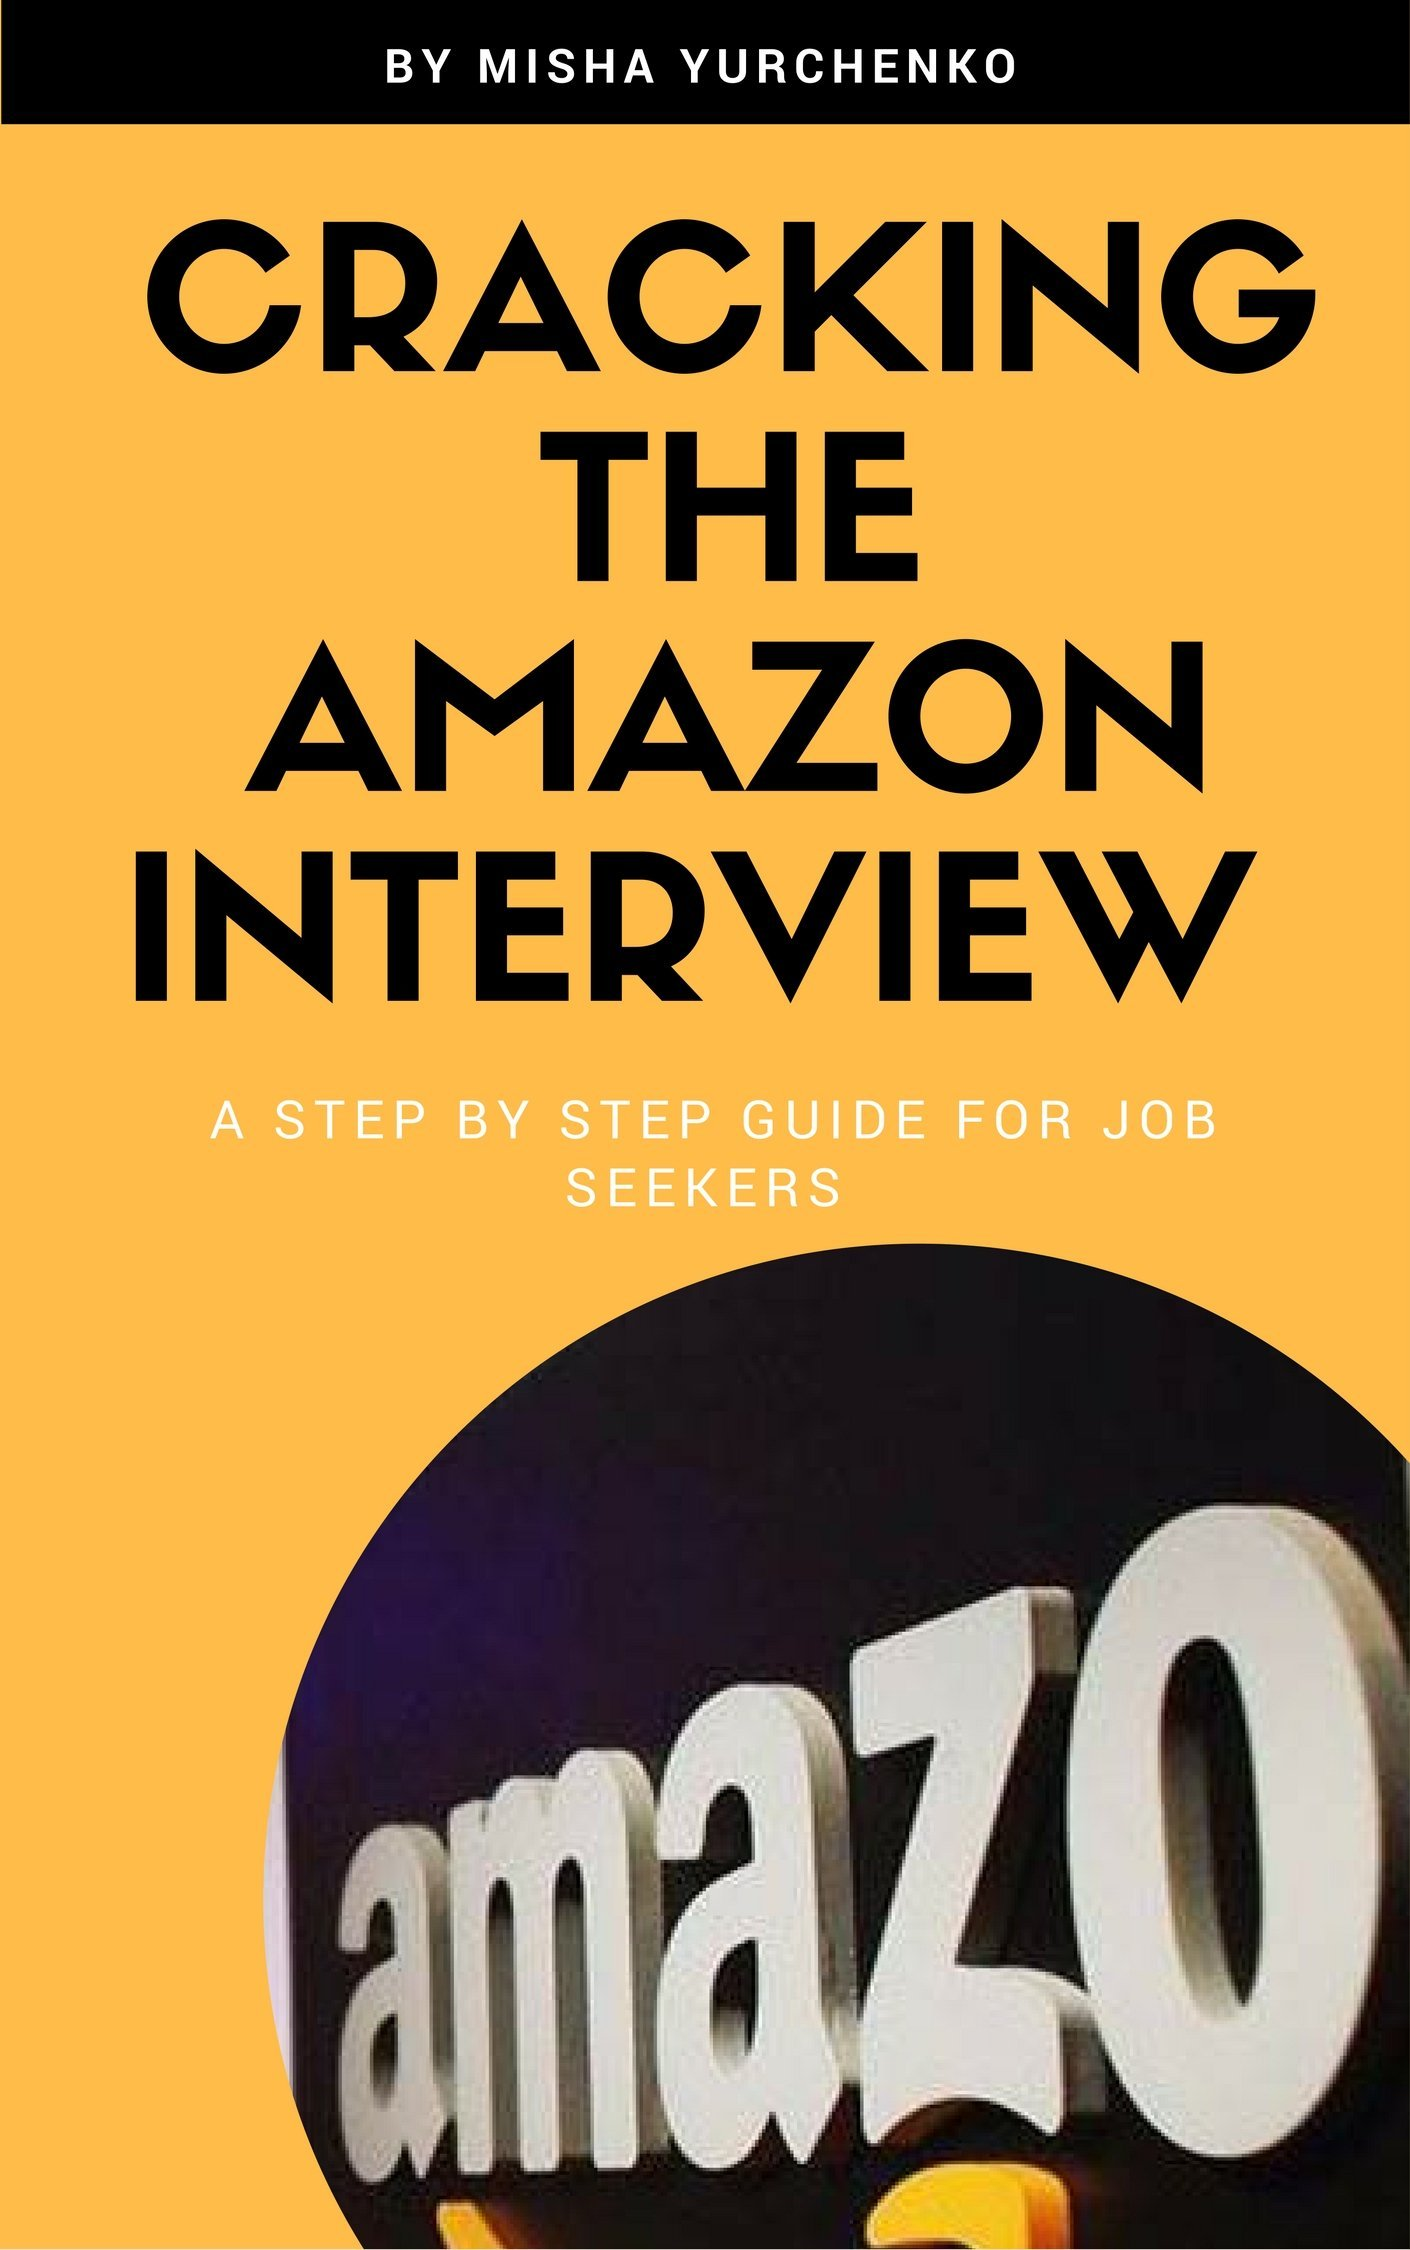 Cracking The Amazon Interview  A Step By Step Guide To Land The Job  English Edition